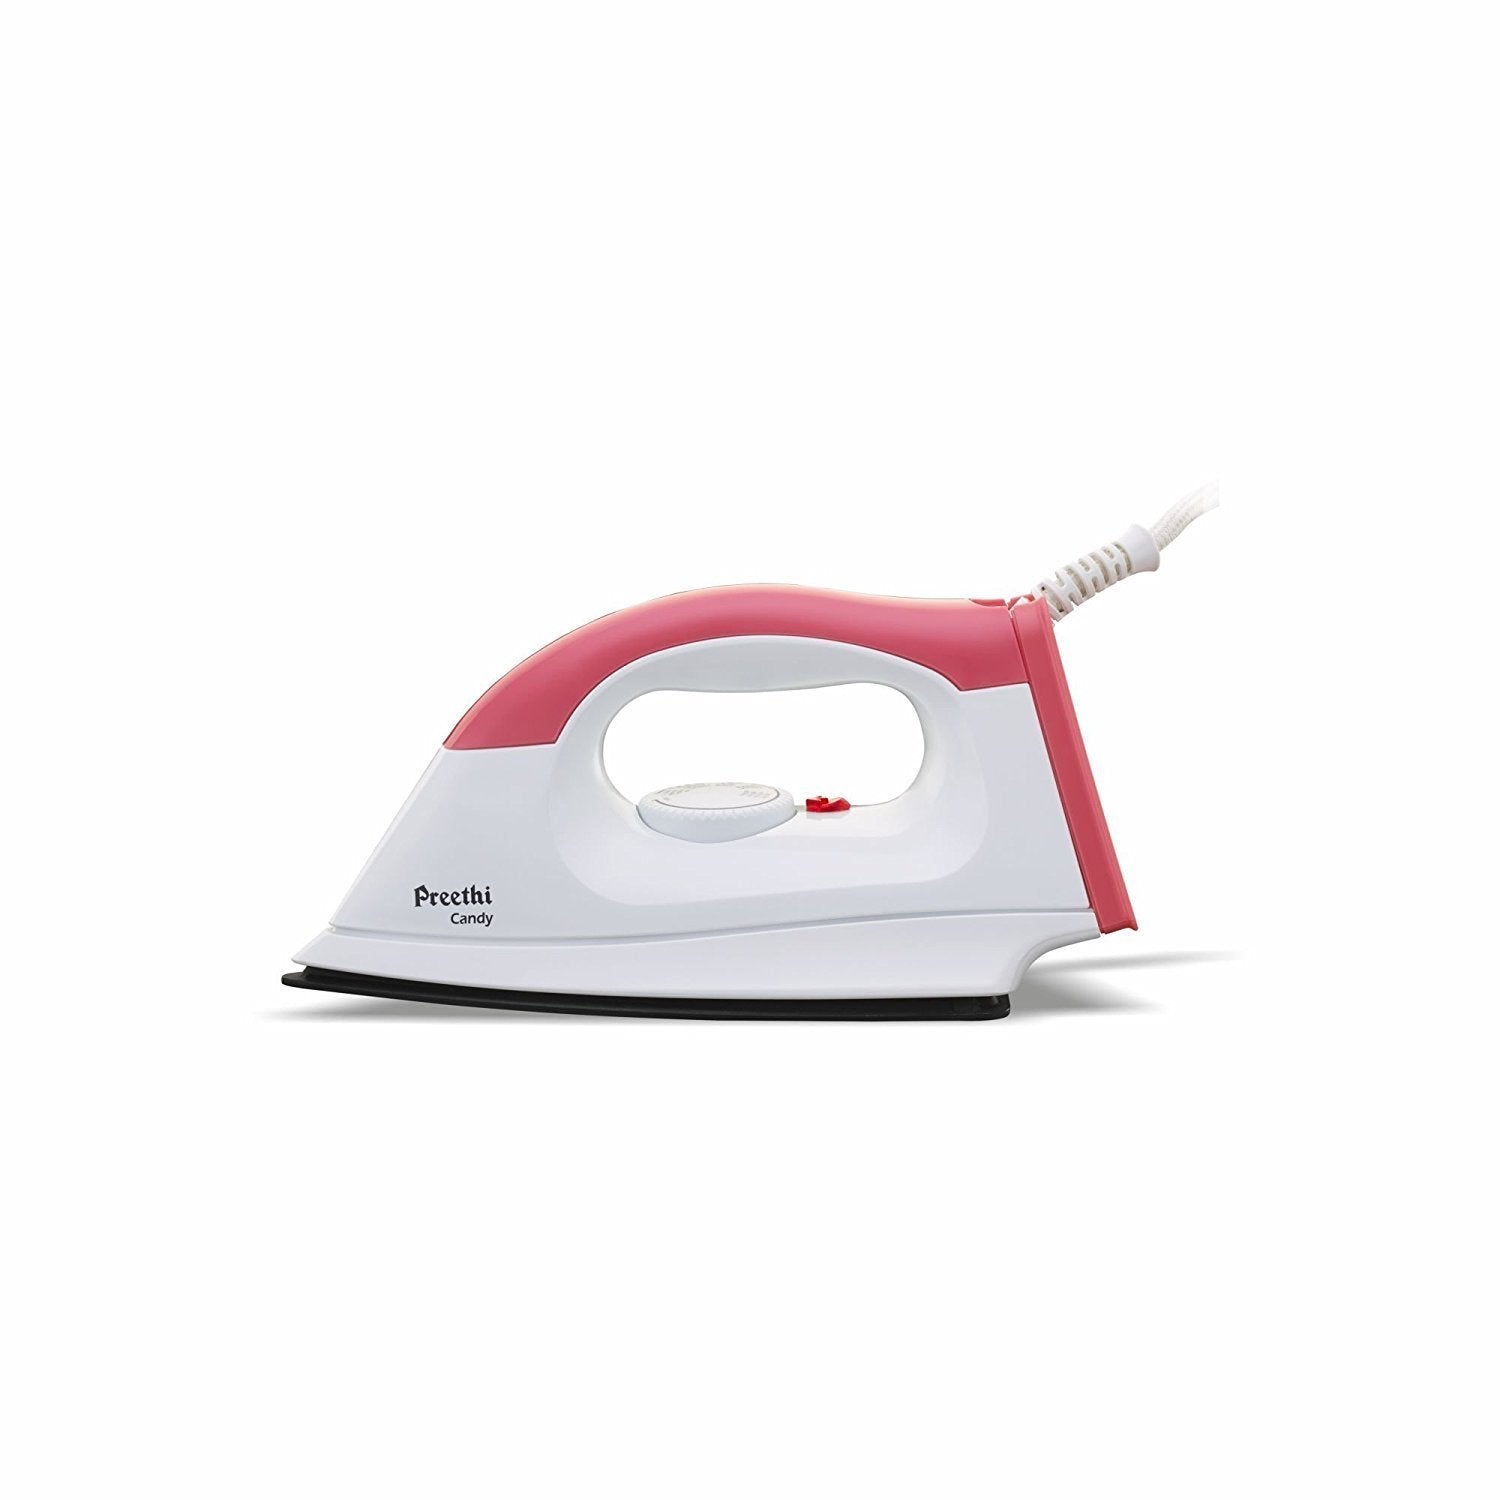 Preethi Candy 1000-Watt Pink-White Dry Iron get best offers deals free and coupons online at buythevalue.in